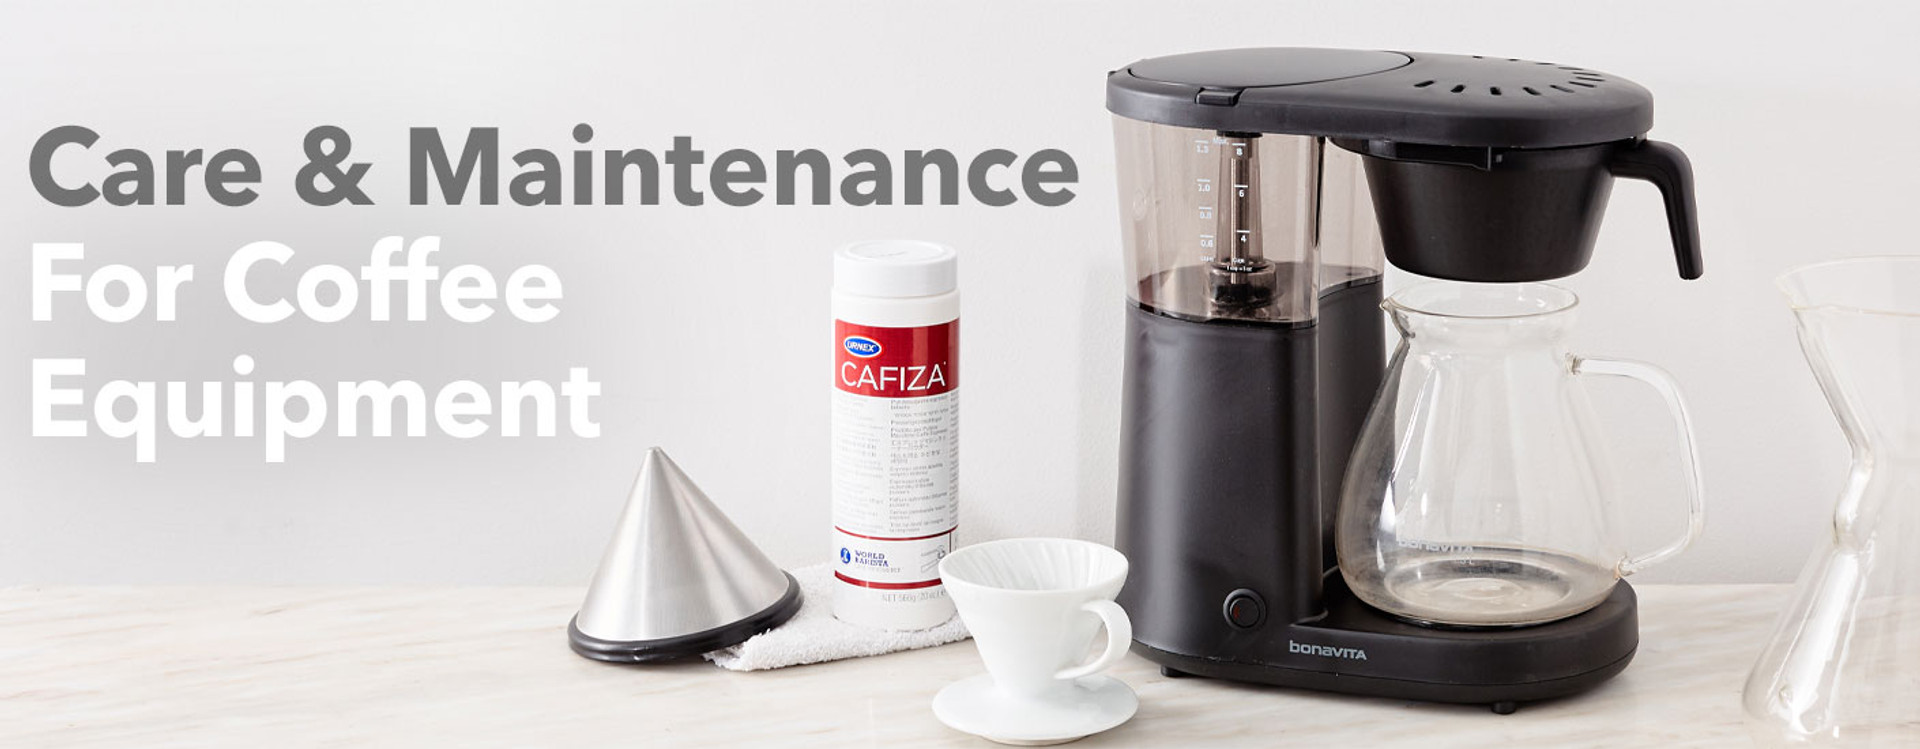 Coffee equipment and cleaner